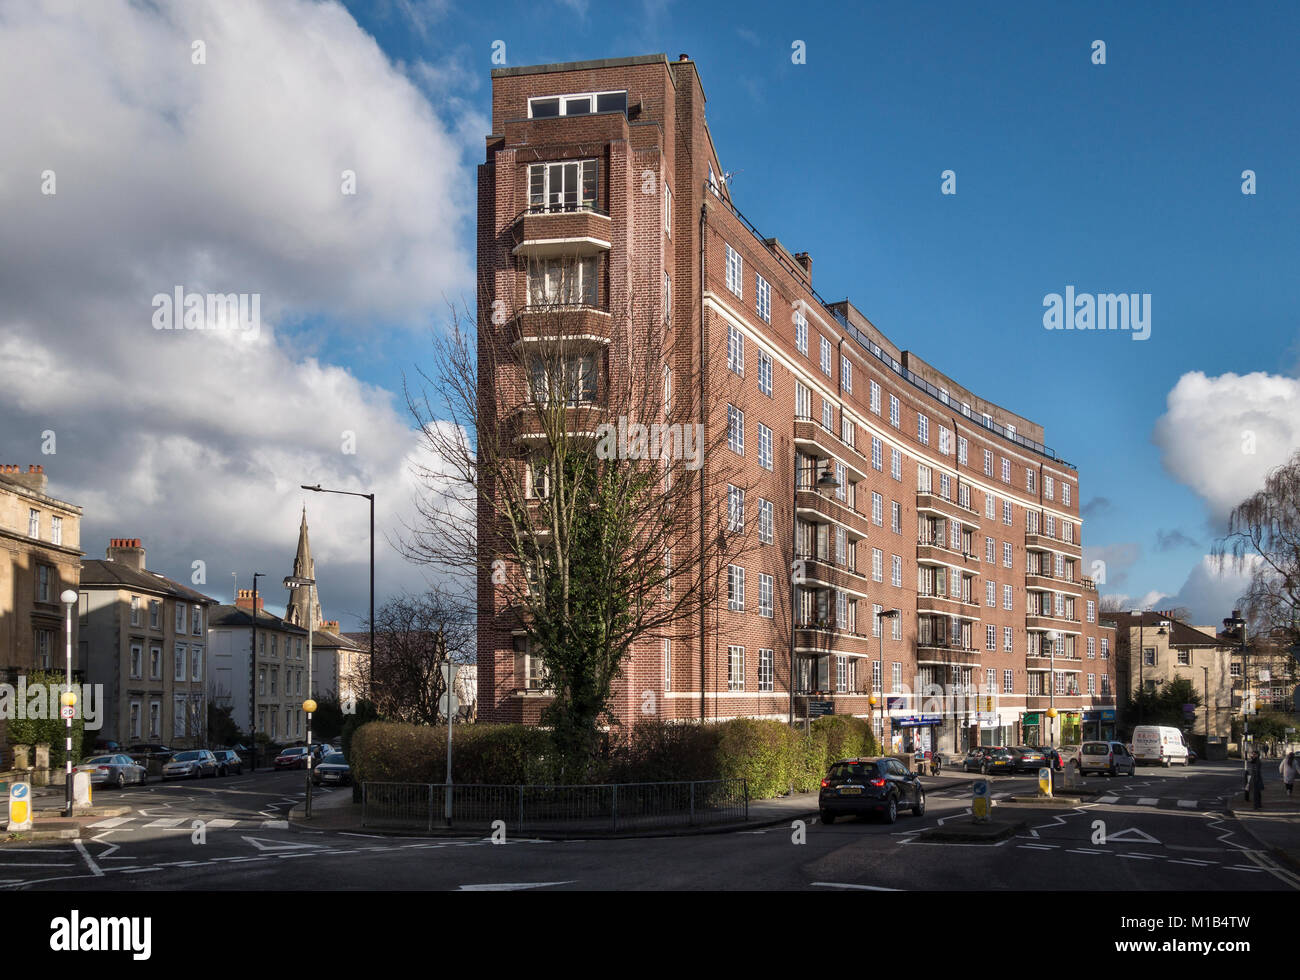 Queen's Court, Clifton, Bristol, UK. A block of luxury flats built in 1937 in the Art Deco style, designed by - Stock Image